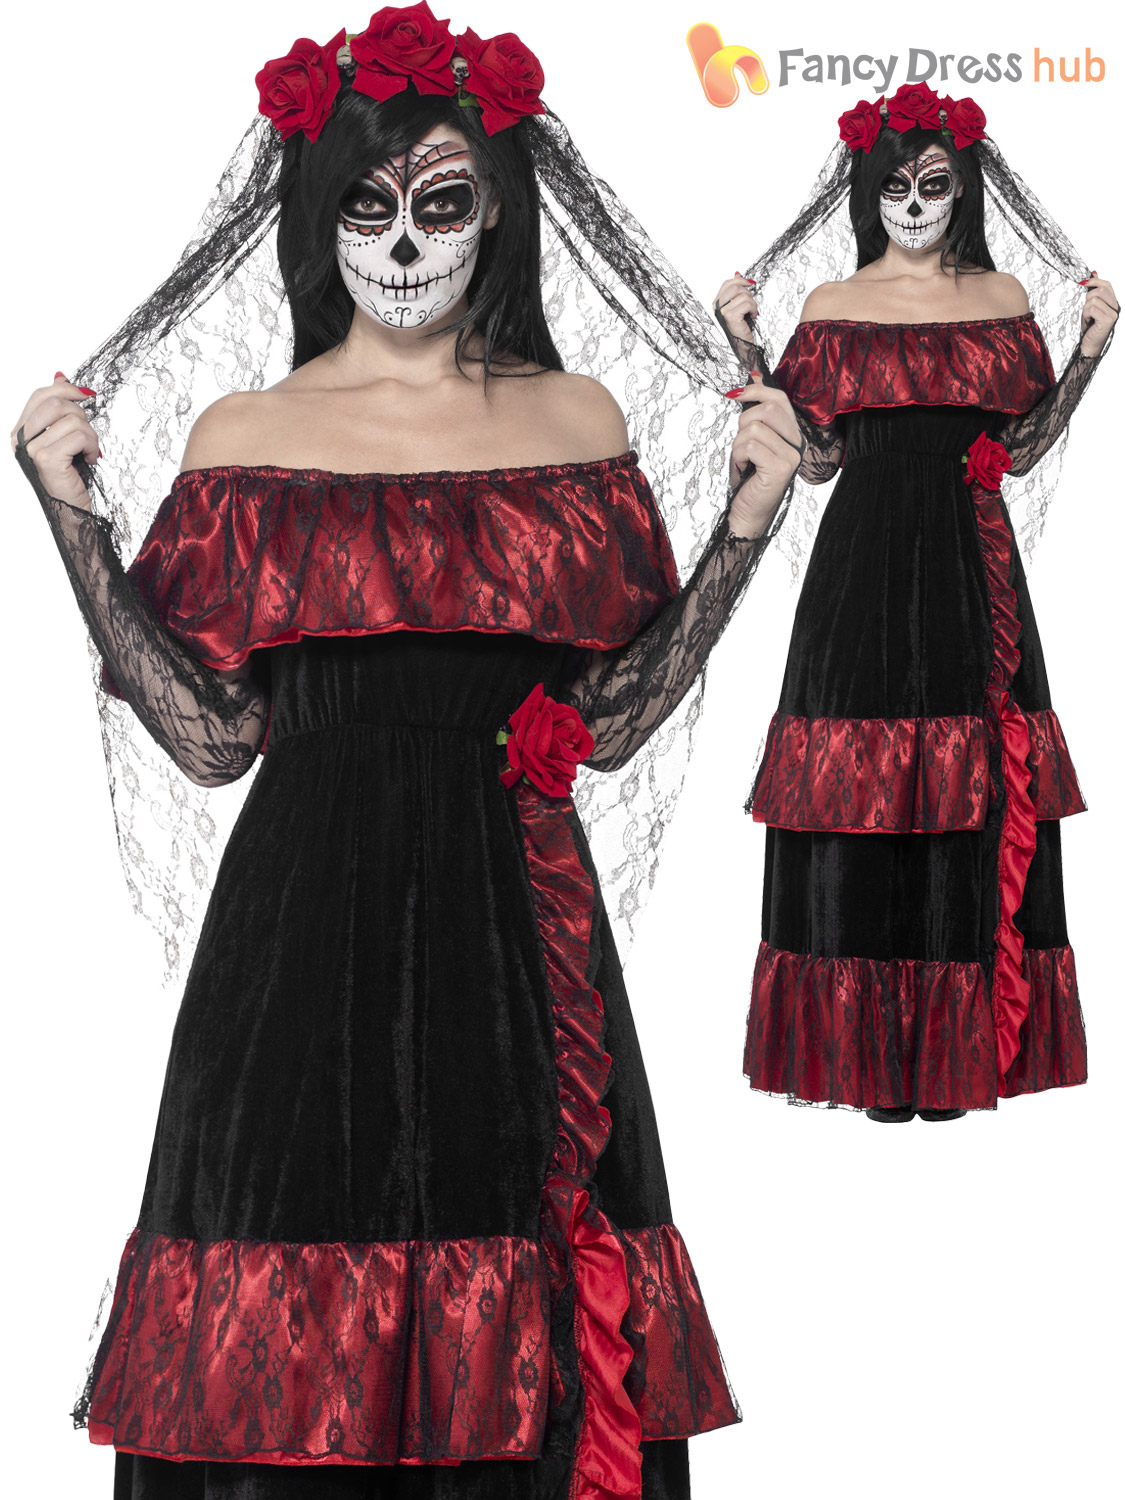 c12901a62f2 Day of The Dead Bride Deluxe Adult Womens Smiffys Fancy Dress Costume - 4  Sizes UK Dress 16-18 43739